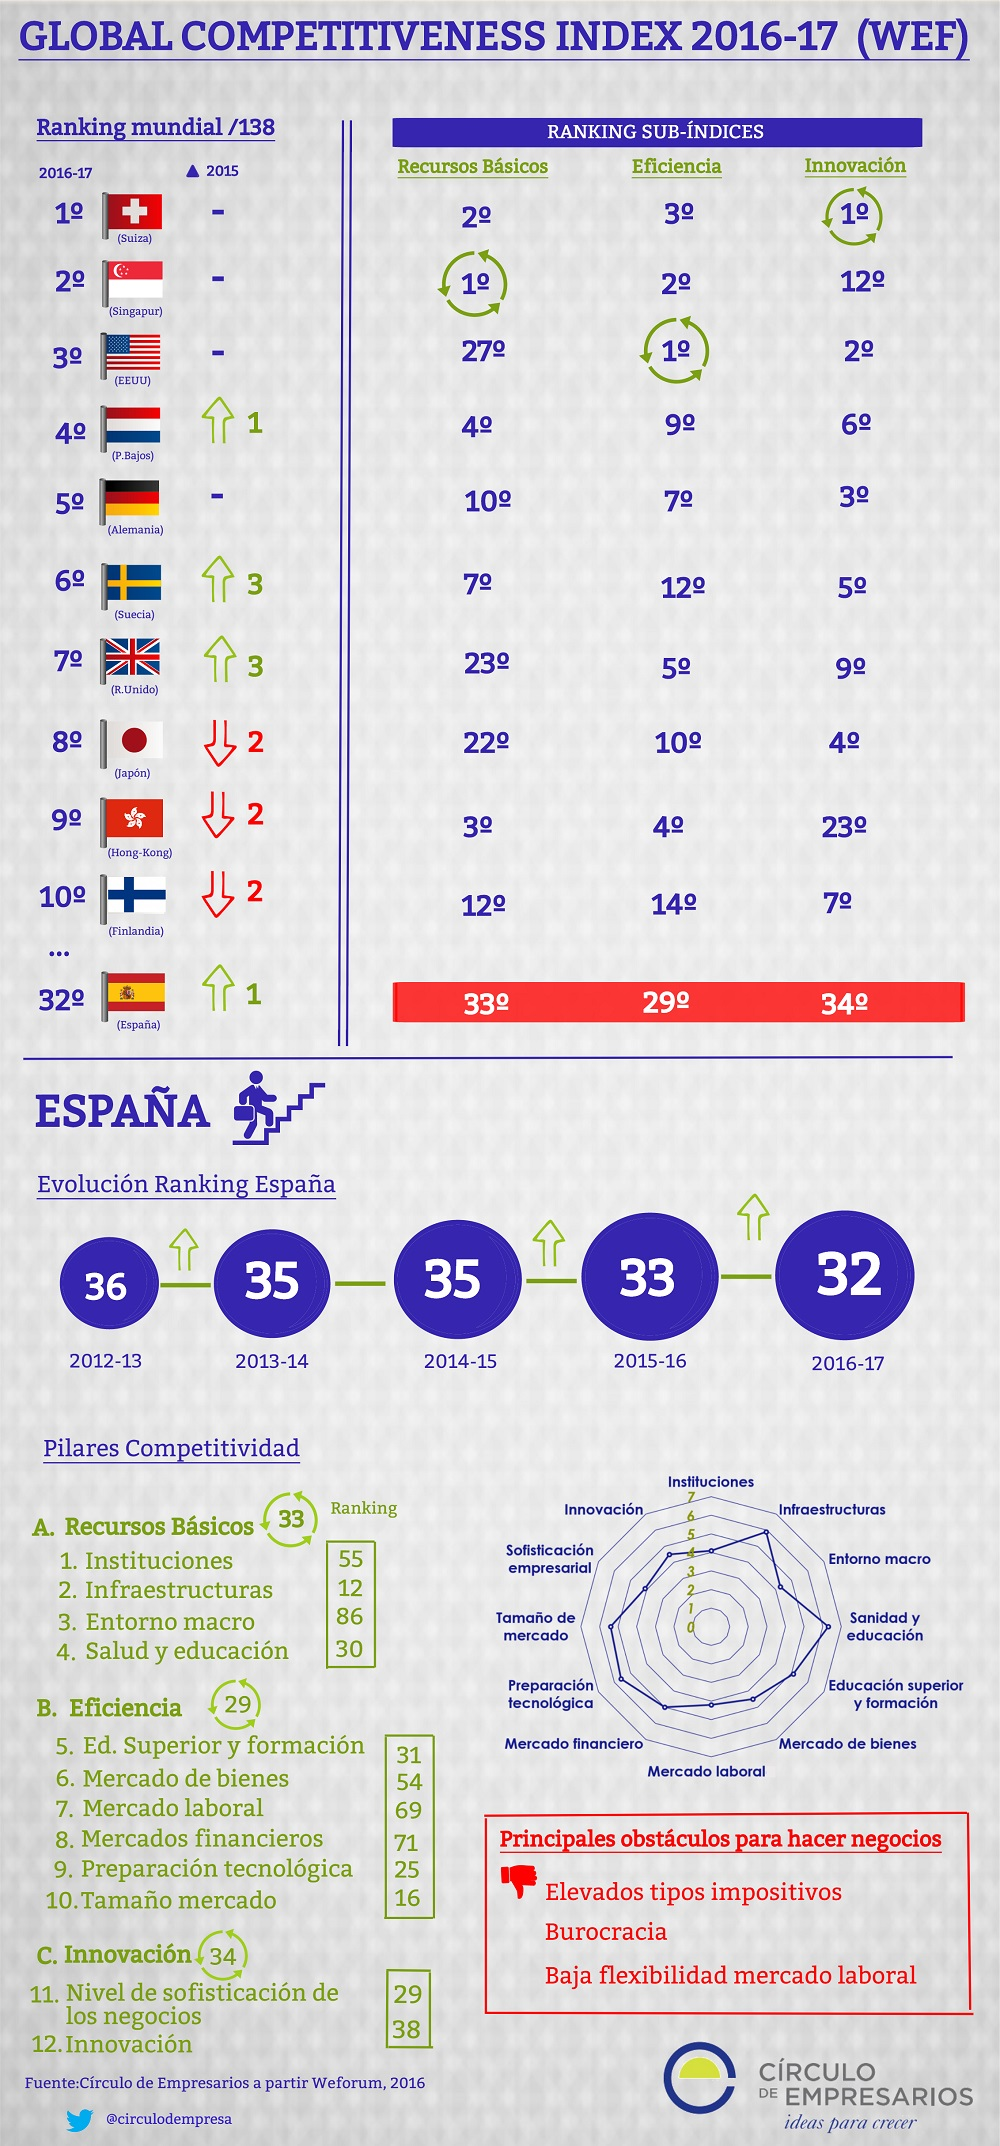 global_competitiveness_index_2016-2017_wef_circulo_de_empresarios_infografia_noviembre_2016-1000px